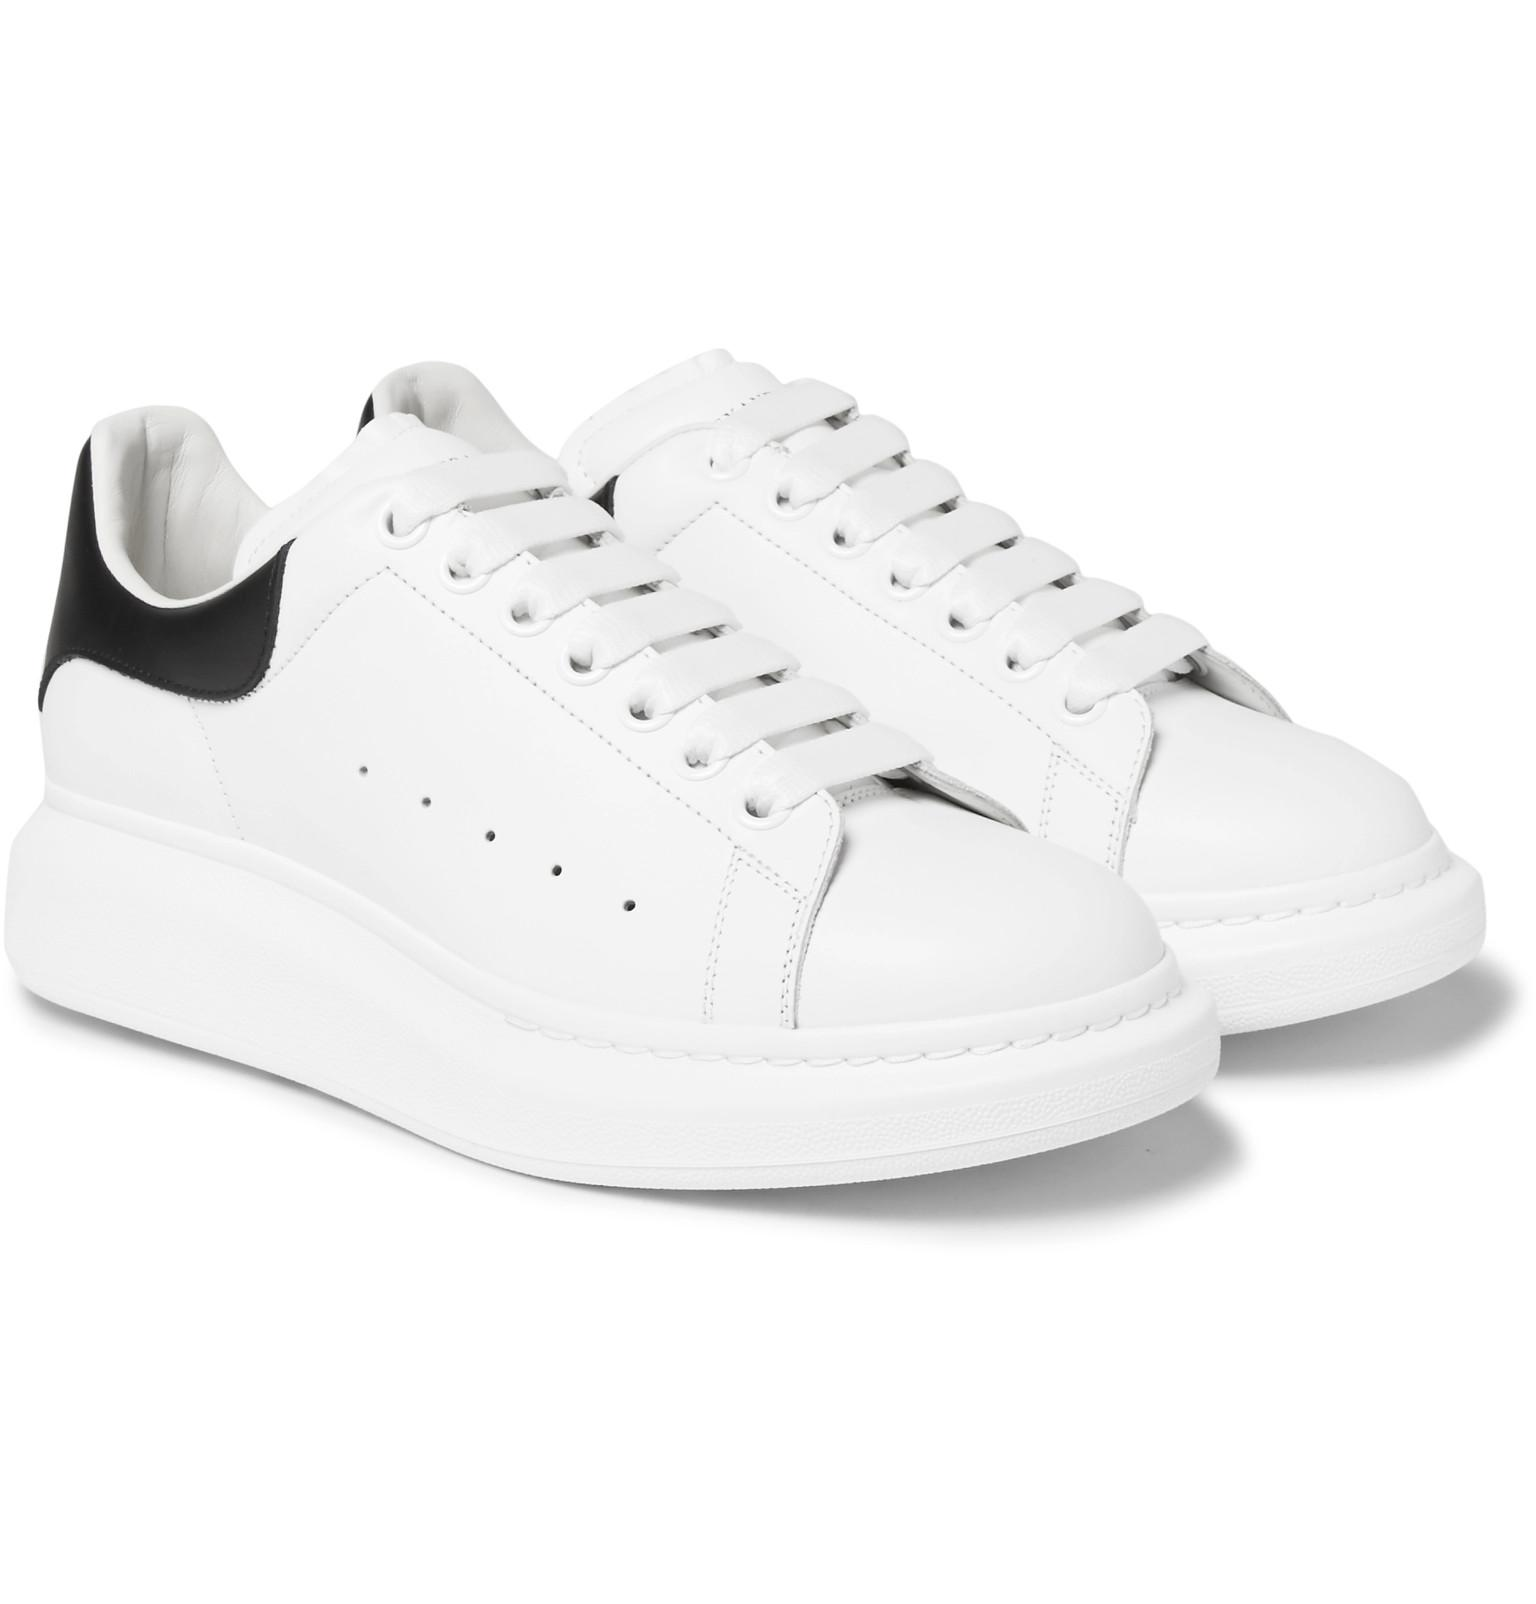 Le Meilleur Alexander Mcqueen Larry Exaggerated Sole Leather Sneakers Ce Mois Ci